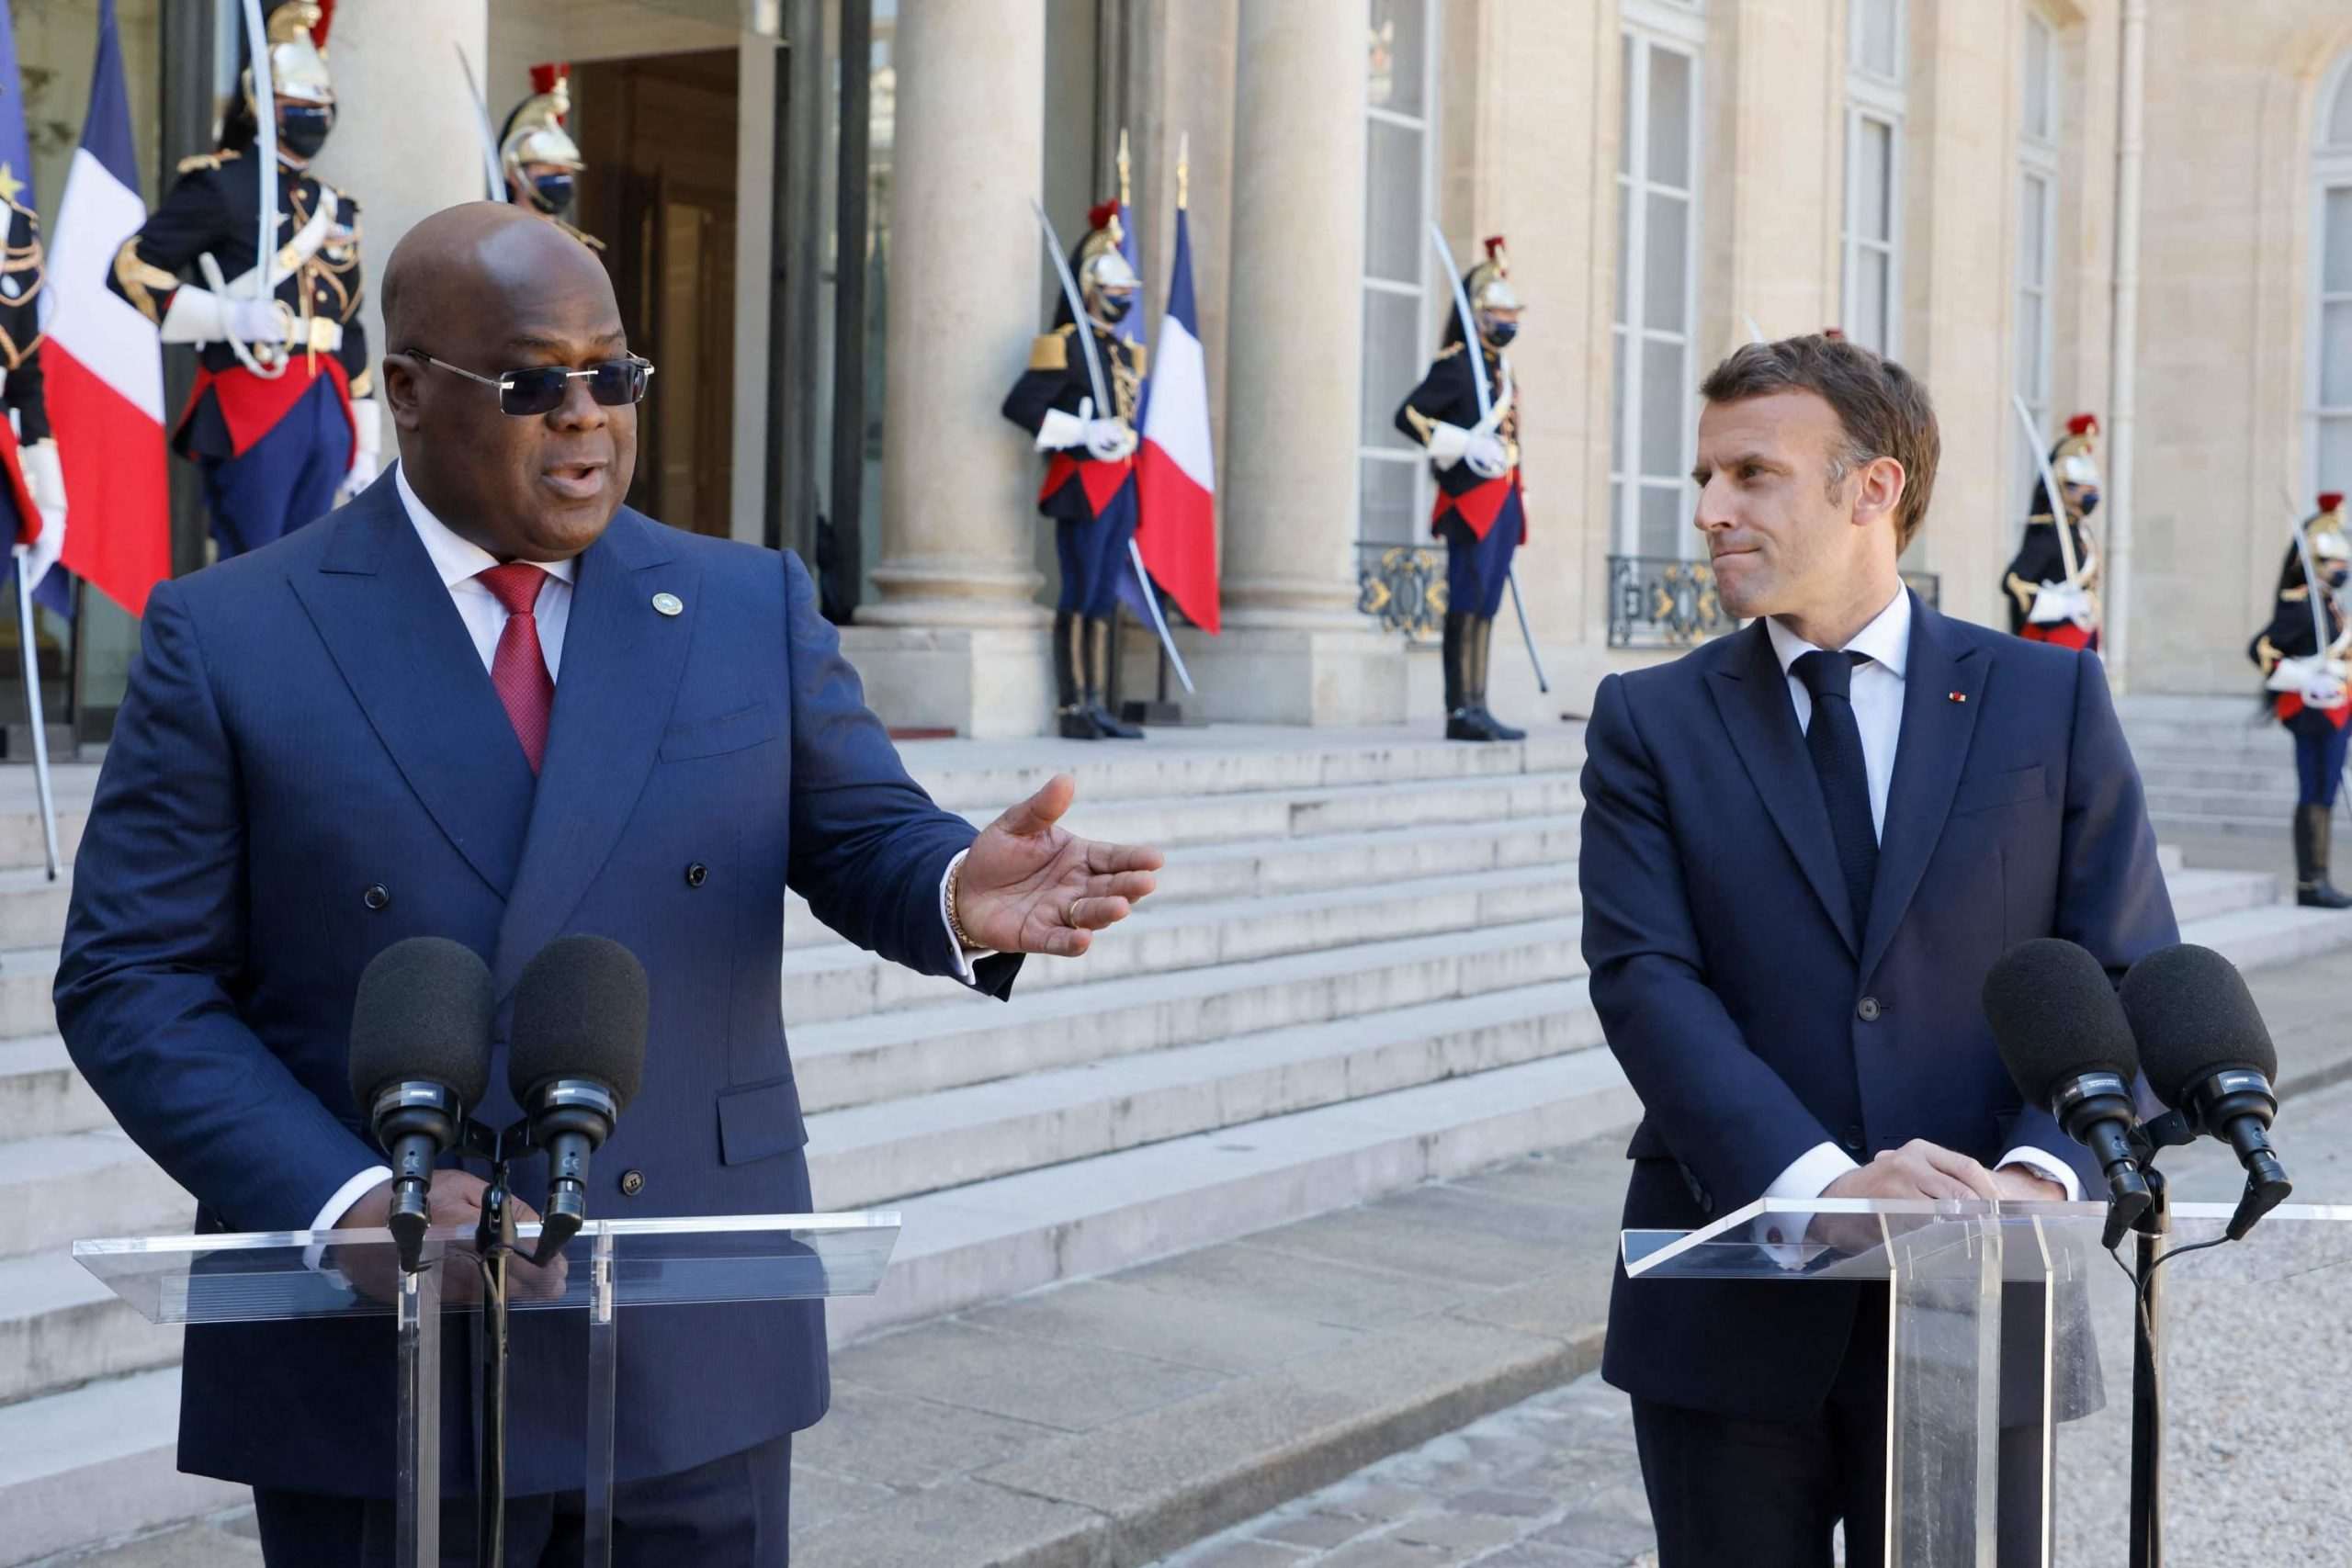 French President Emmanuel Macron (R) and Democratic Republic of Congo President Felix Tshisekedi Tshilombo (L) give a speech at The Elysee Presidential Palace in Paris on April 27, 2021, ahead of a working lunch. (Photo by Ludovic MARIN / AFP)